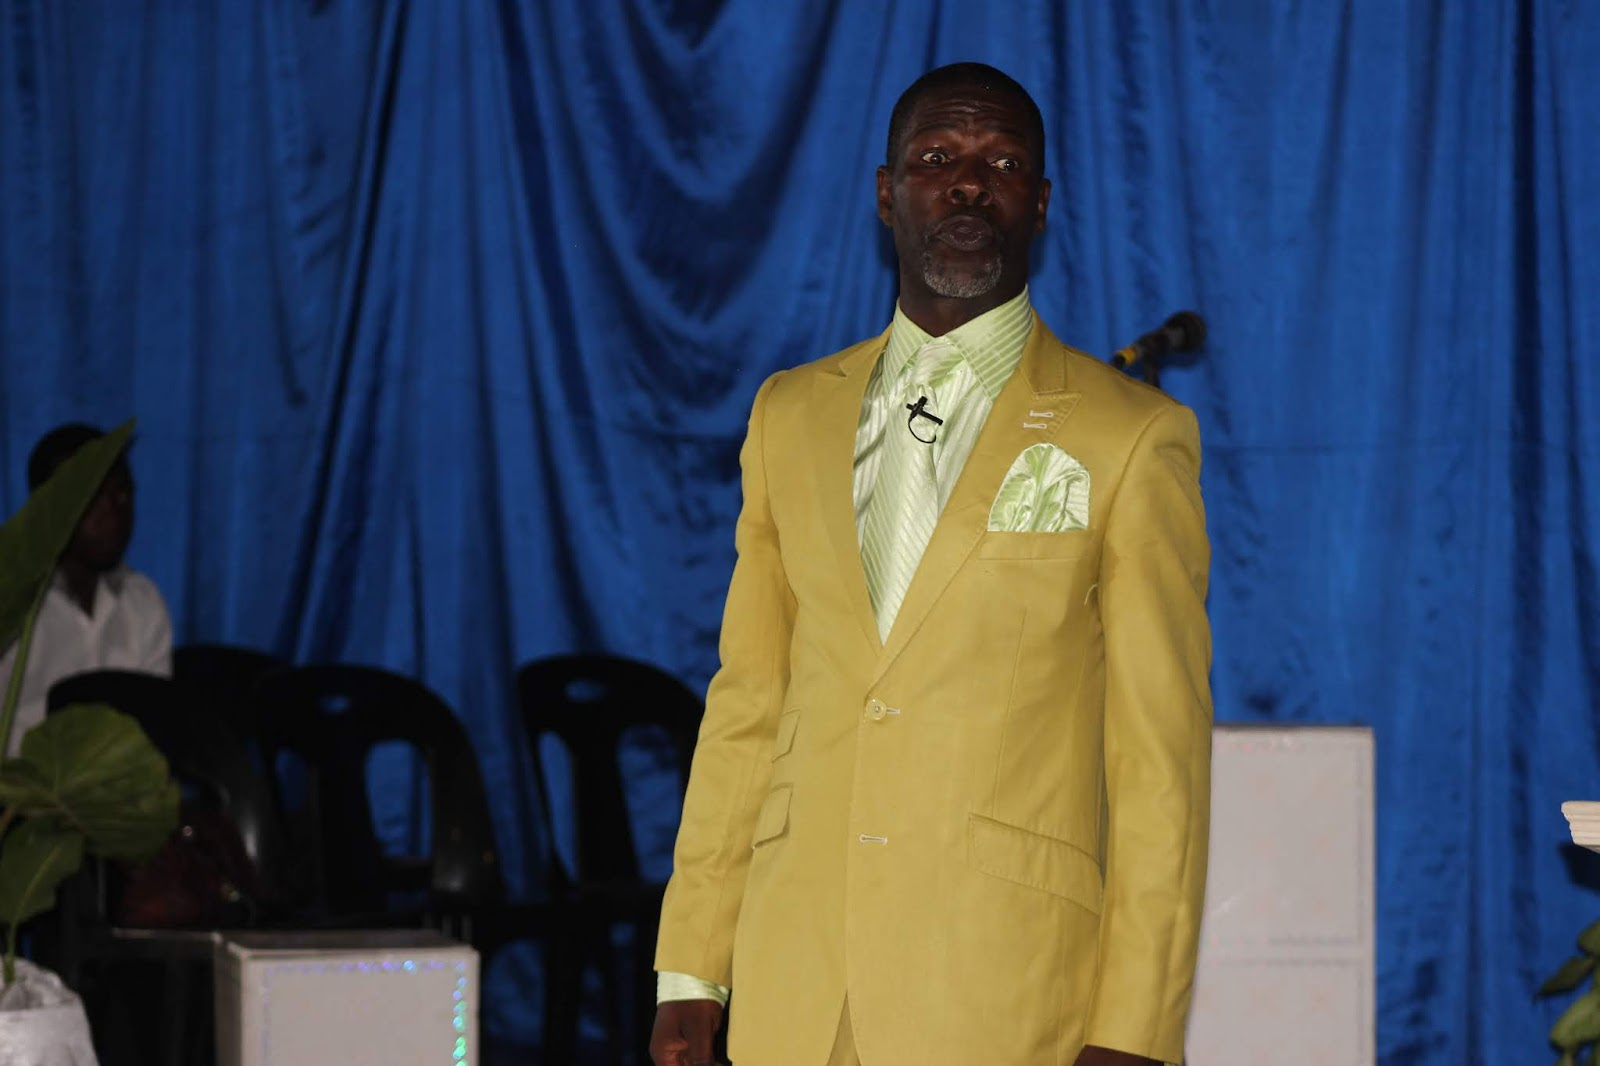 Bishop Nelson Nzvimbo Is The Founder & Bishop Of Ablaze International Ministries, Ablaze Churches international, Holy Ghost School of Ministry - Bishop Nelson Nzvimbo: